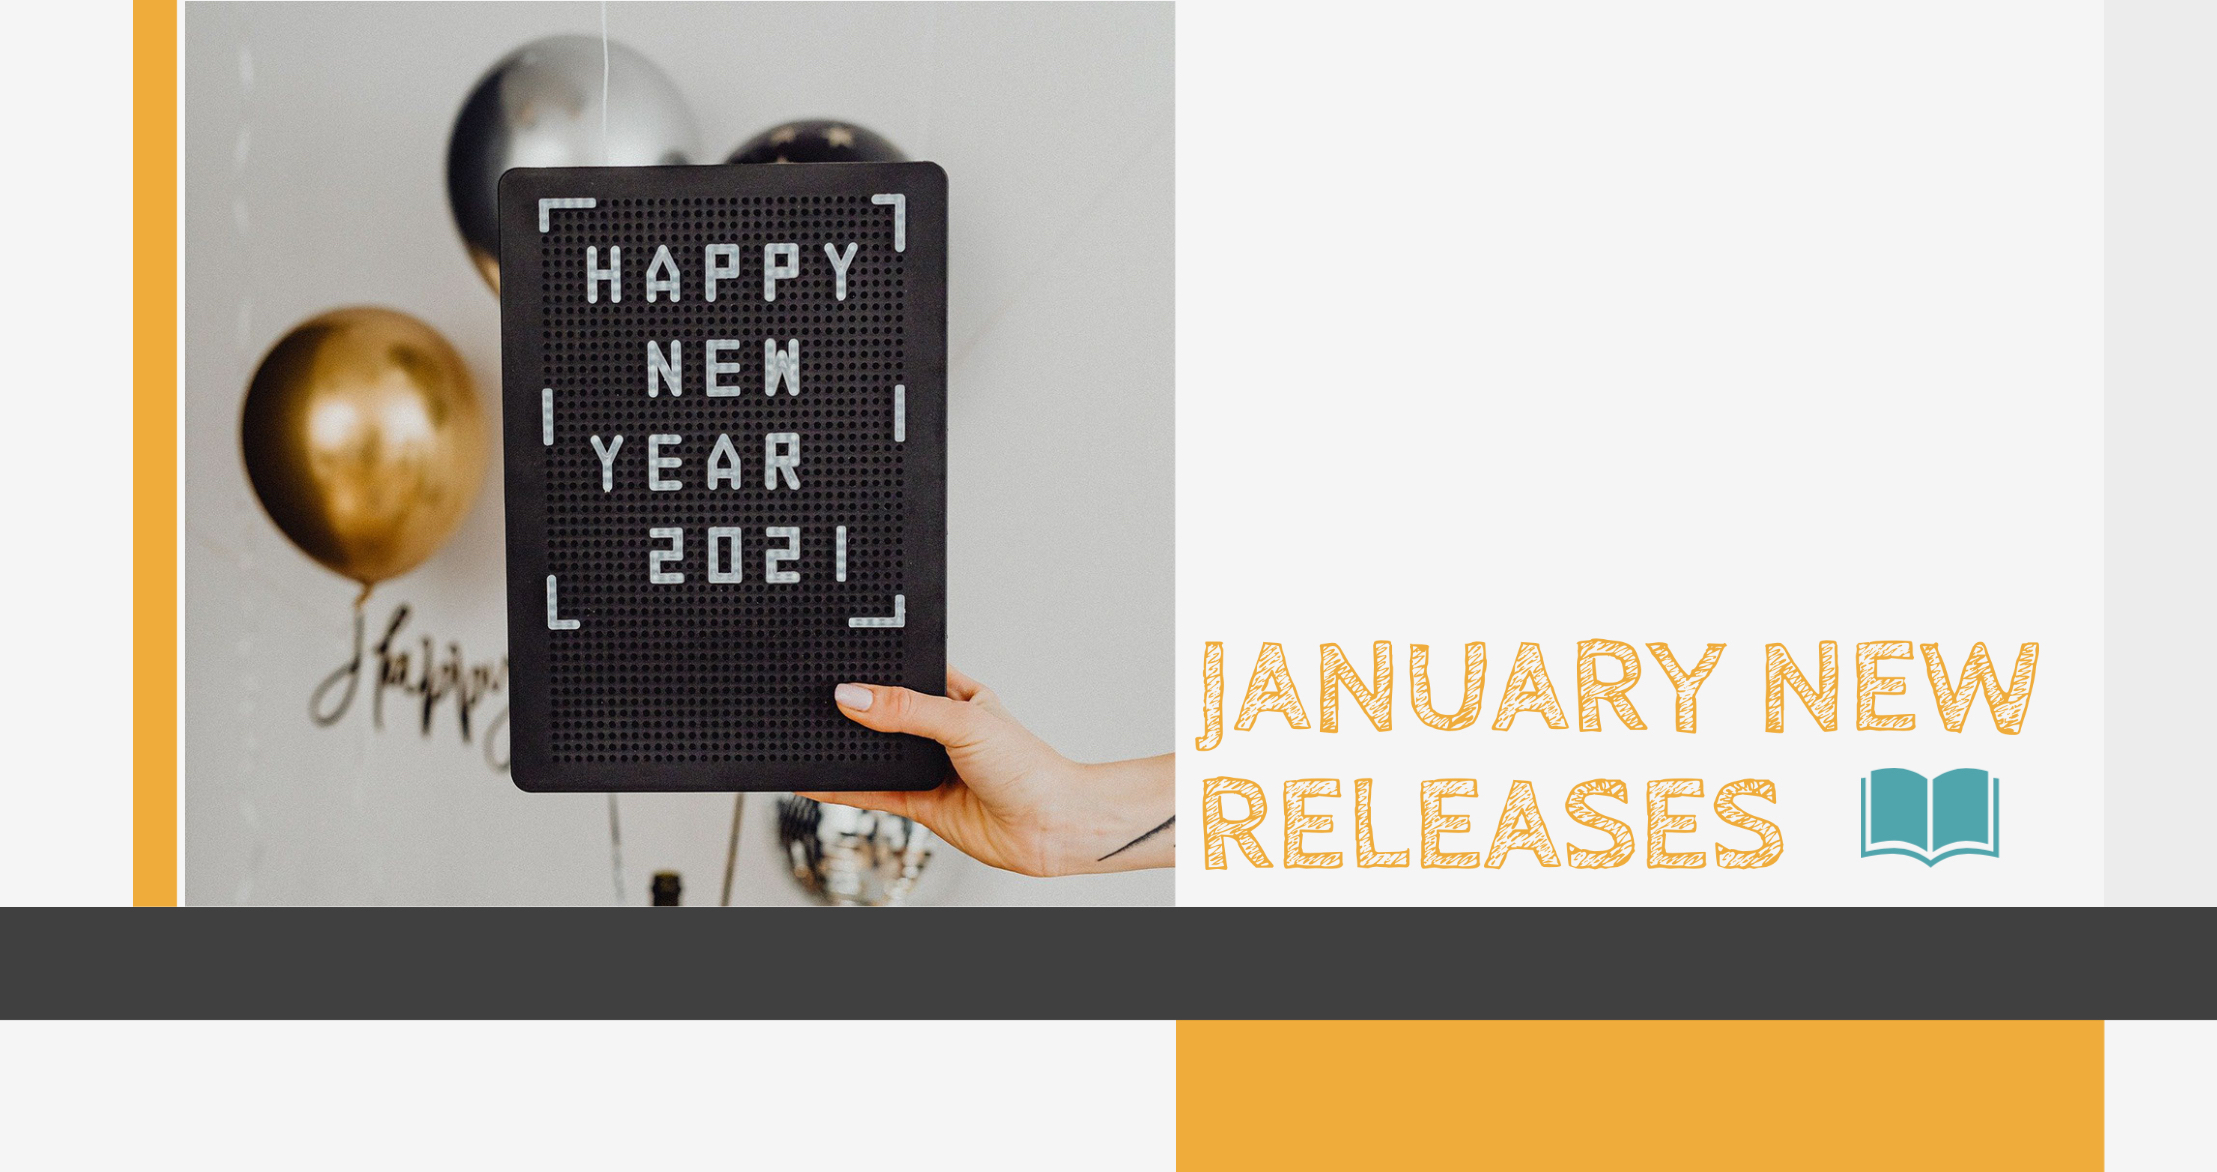 January New Releases!